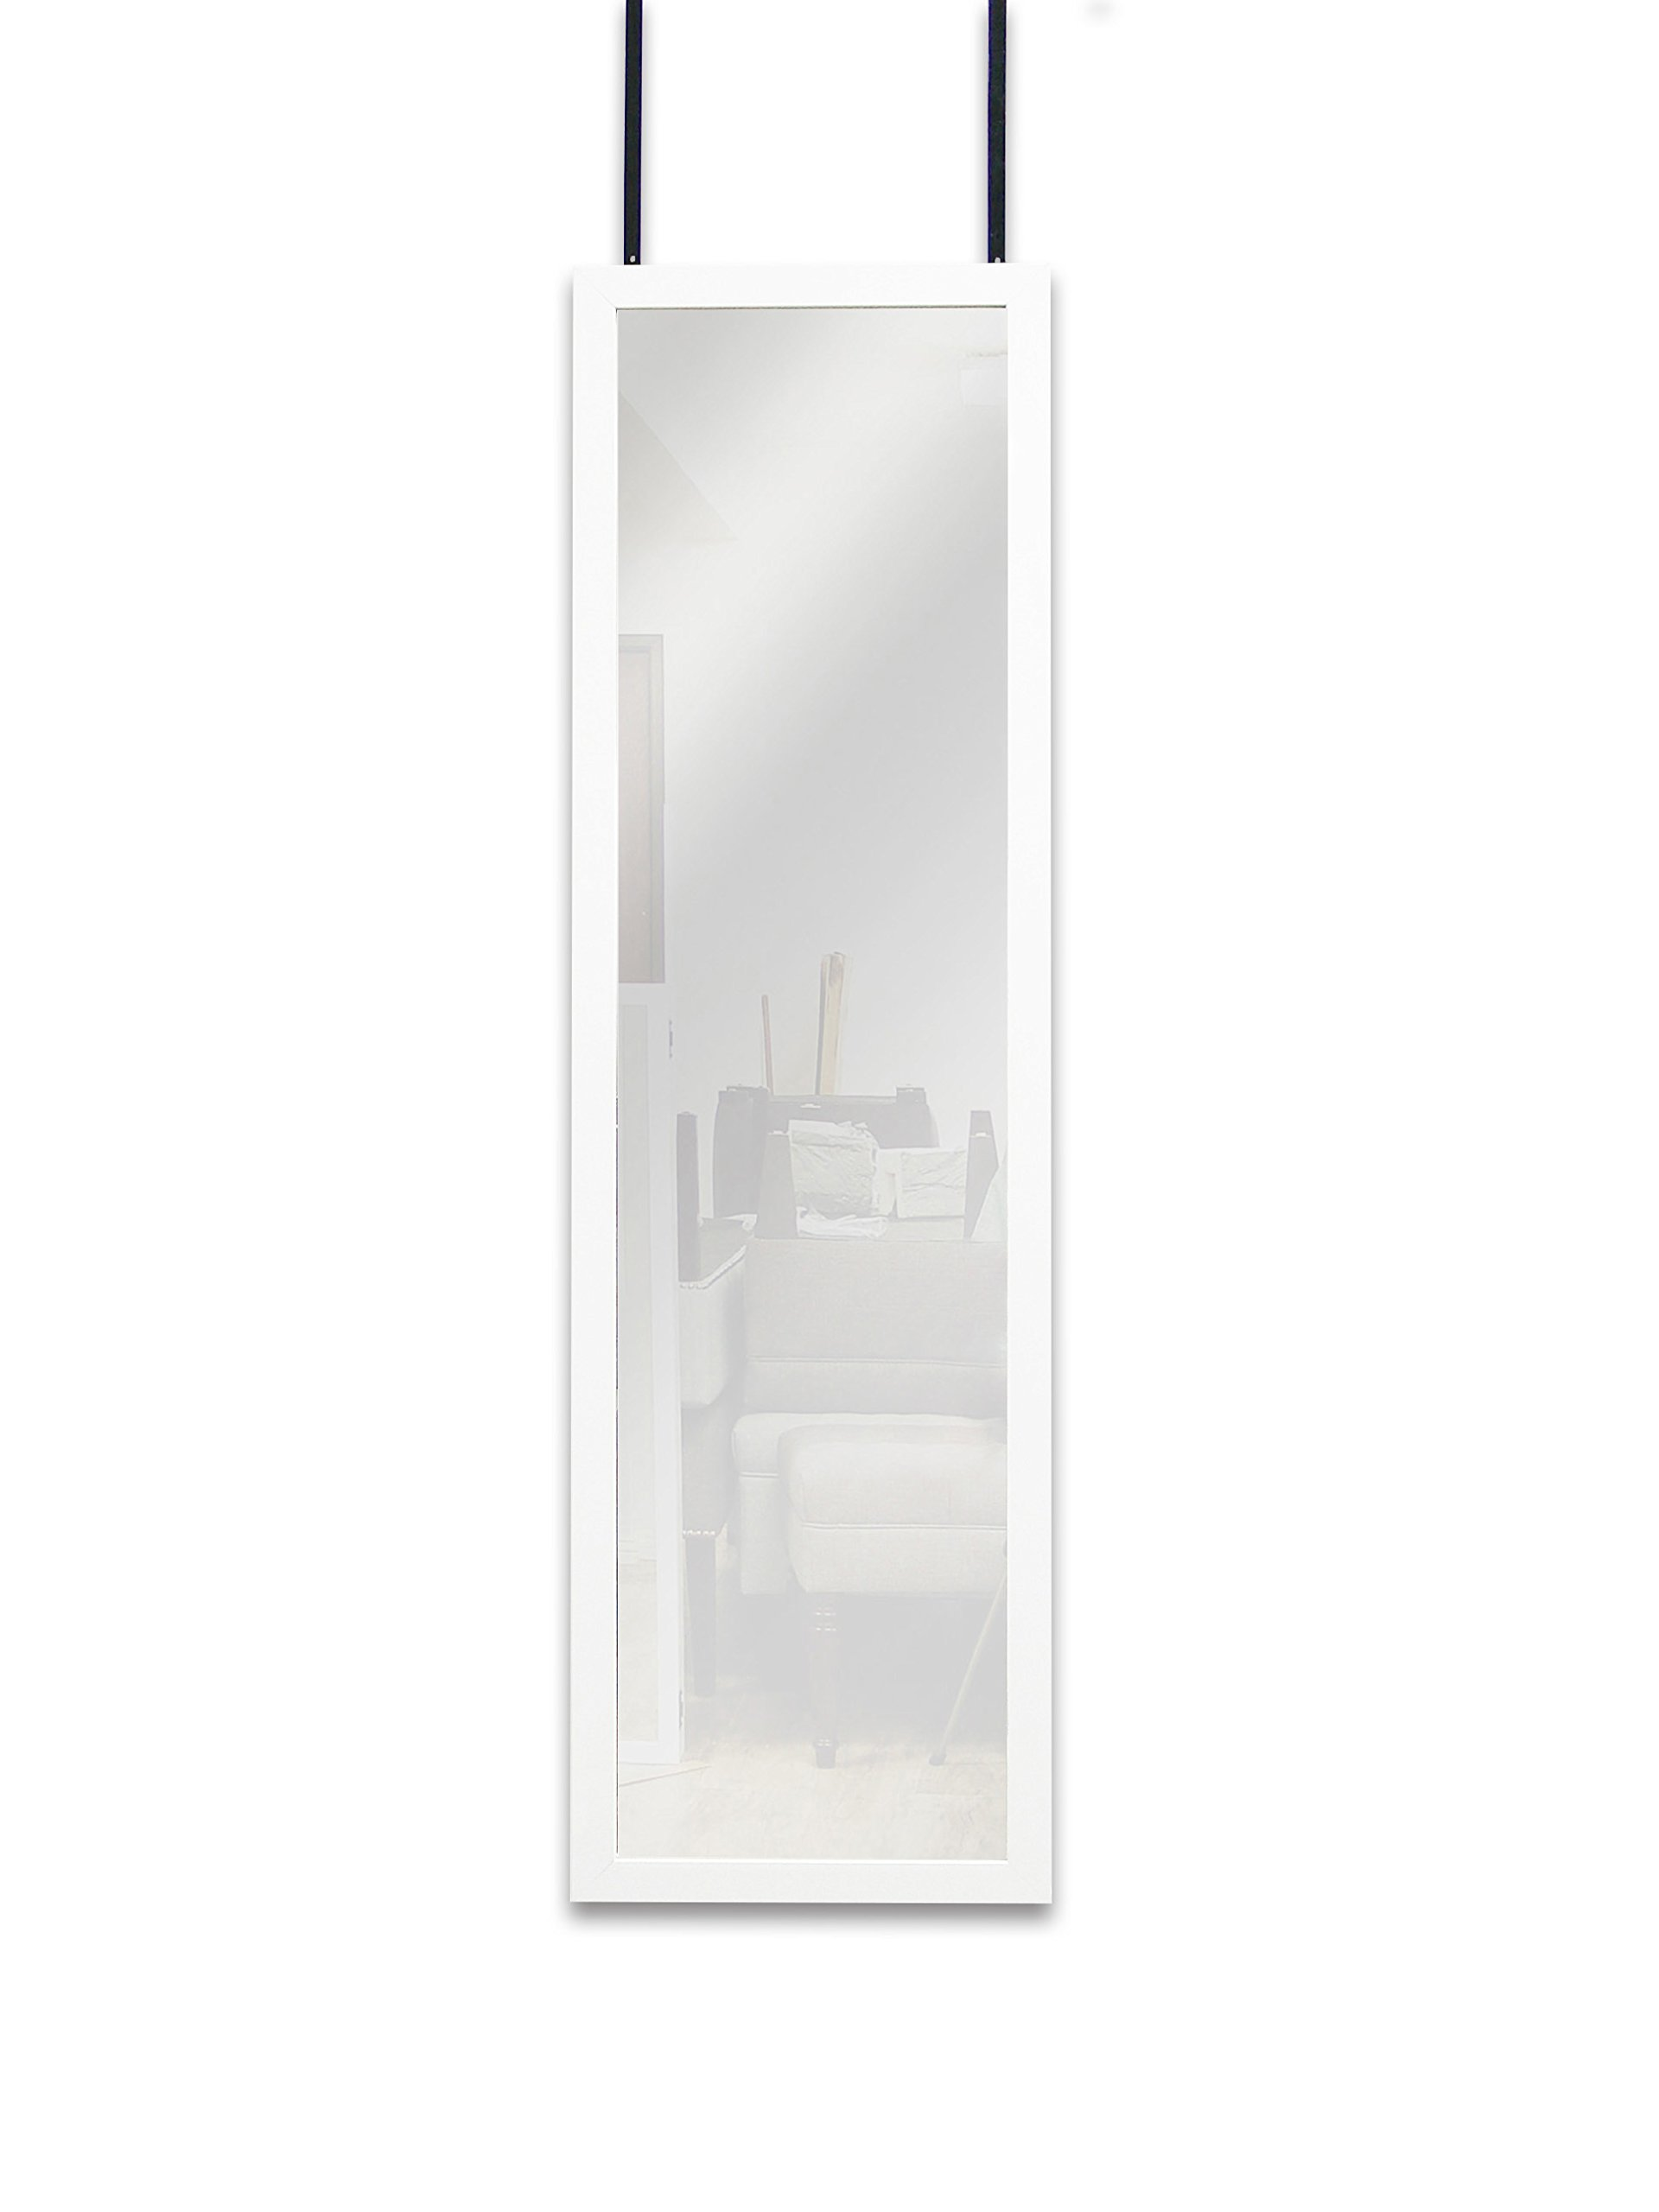 Mirrotek Door Mirror Hanging, 14 x 42, White